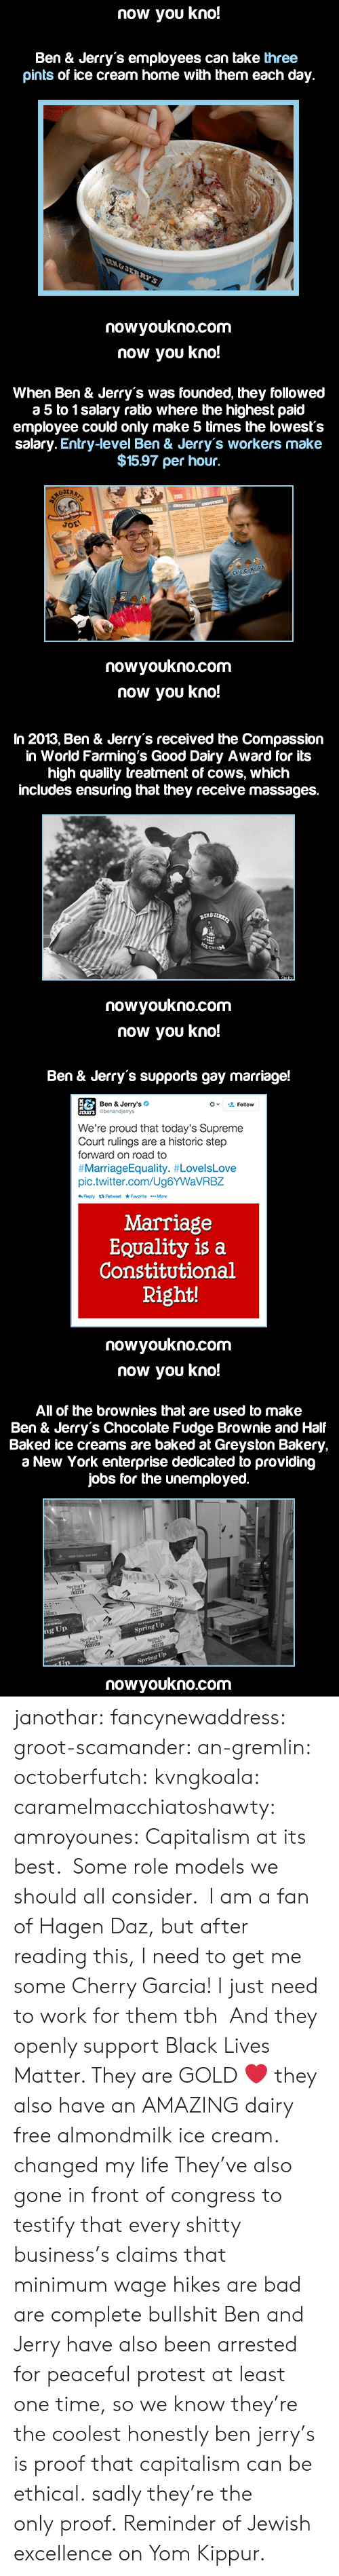 Black Lives Matter: now you kno!  Ben & Jerry's employees can take three  pints of ice cream home with them each day.  nowyoukno.com   now you kno!  When Ben & Jerry's was founded, they followed  a 5 to 1 salary ratio where the highest paid  employee could only make 5 times the lowests  salary. Entry-level Ben & Jerry's workers make  $15.97 per hour.  JER  nowyoukno.com   now you kno!  In 2013, Ben & Jerry's received the Compassion  in World Farming's Good Dairy Award for its  high quality treatment of cows, which  includes ensuring that they receive massages.  nowyoukno.com   now you kno!  Ben & Jerry's supports gay marriage!  Ben & Jerry's  Gbenanderys  '오 Follow  We're proud that today's Supreme  Court rulings are a historic step  forward on road to  #MarriageEquality. #LovelsLove  pic.twitter.com/Ug6YWaVRBZ  Marriage  EQuality is a  Constitutional  Right!  nowyoukno.com   now you kno!  All of the brownies that are used to make  Ben & Jerry's Chocolate Fudge Brownie and Half  Baked ice creams are baked at Greyston Bakery,  a New York enterprise dedicated to providing  jobs for the unemployed.  ng Up  Spring Up  Spring Up  nowyoukno.com janothar: fancynewaddress:  groot-scamander:  an-gremlin:  octoberfutch:  kvngkoala:  caramelmacchiatoshawty:  amroyounes:  Capitalism at its best. Some role models we should all consider. I am a fan of Hagen Daz, but after reading this, I need to get me some Cherry Garcia!  I just need to work for them tbh  And they openly support Black Lives Matter. They are GOLD ❤️  they also have an AMAZING dairy free almondmilk ice cream. changed my life  They've also gone in front of congress to testify that every shitty business's claims that minimum wage hikes are bad are complete bullshit   Ben and Jerry have also been arrested for peaceful protest at least one time, so we know they're the coolest  honestly ben  jerry's is proof that capitalism can be ethical. sadly they're the onlyproof.  Reminder of Jewish excellence on Yom Kippur.